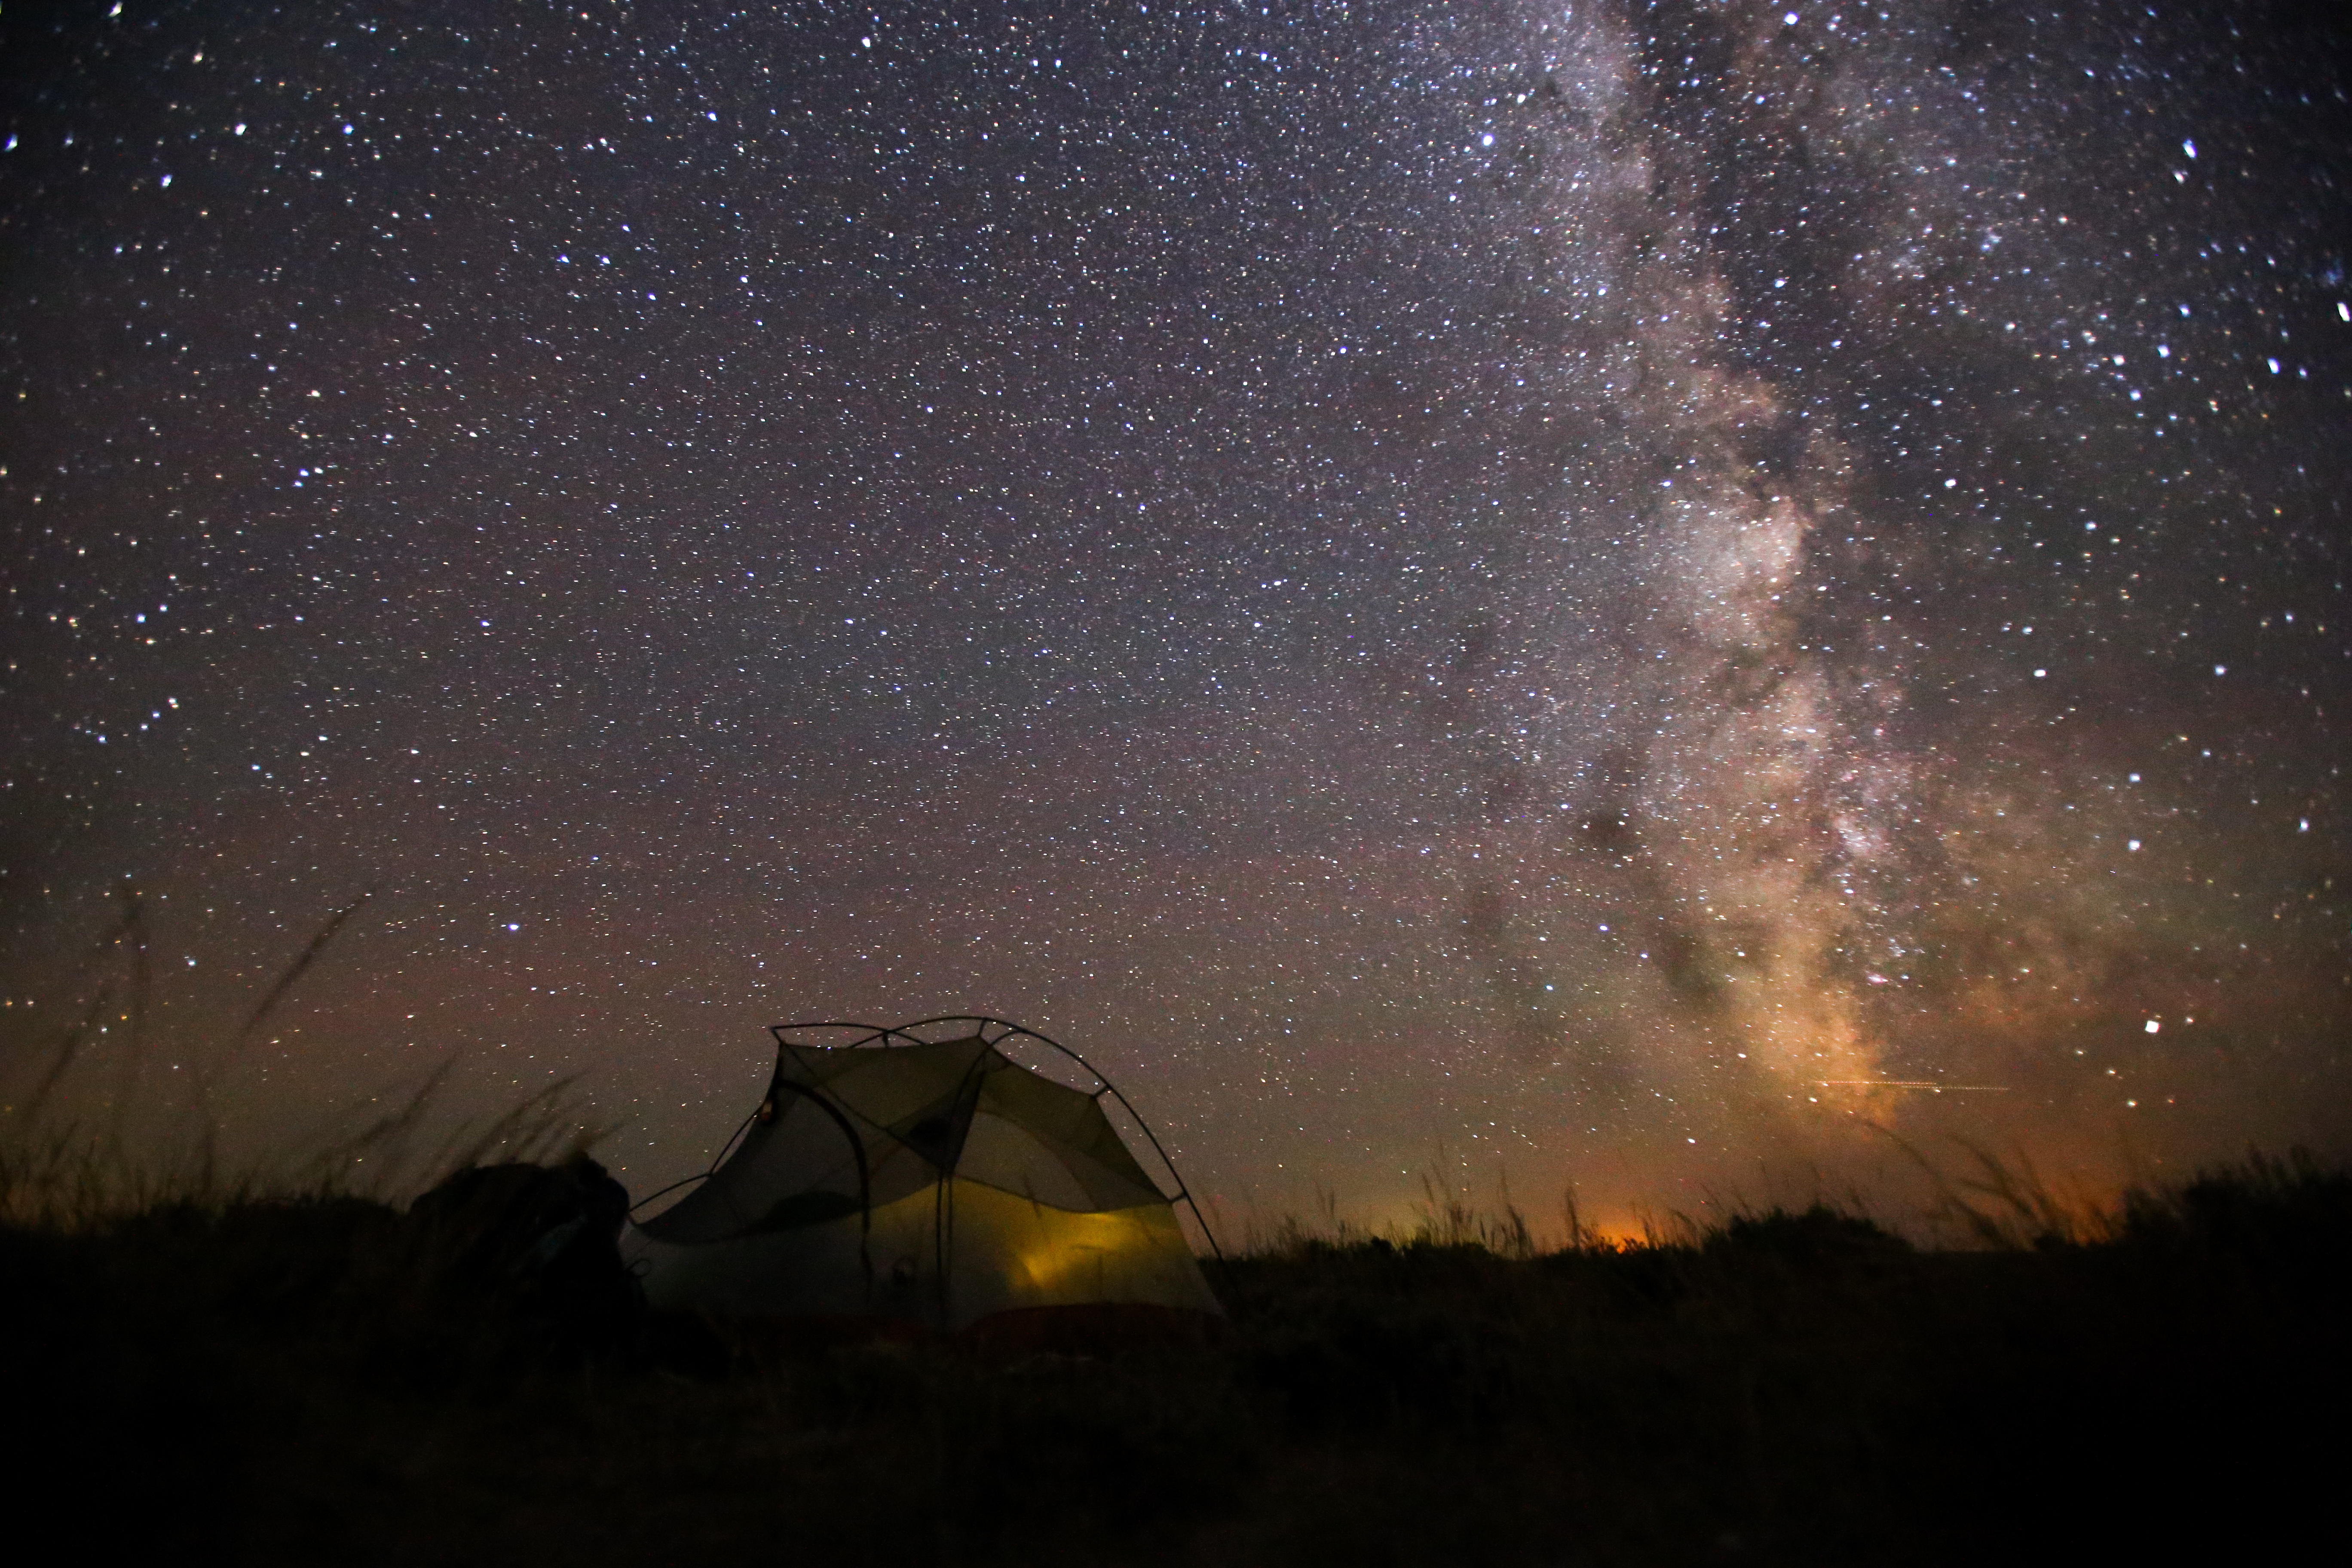 Stargazing at your transient camp home